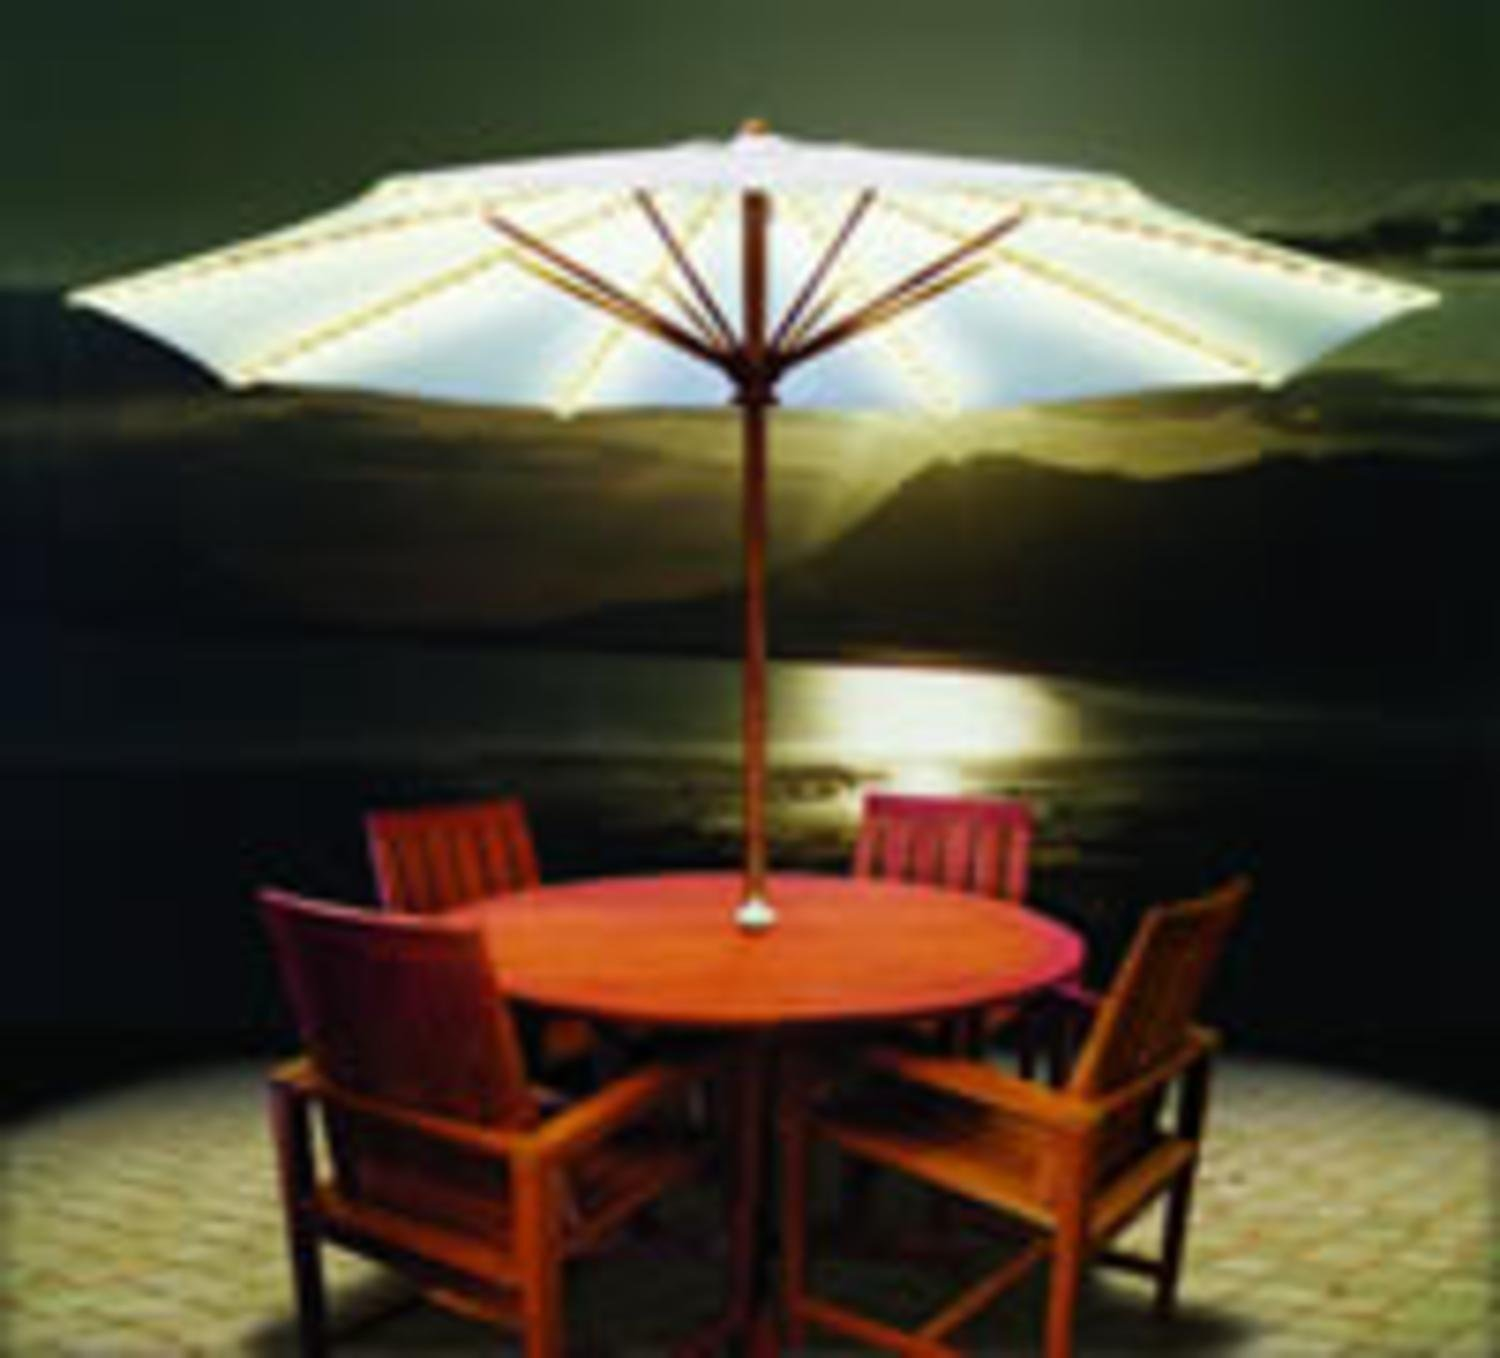 dsc umbrella product fire pit for solar good lighting life patio looking lights review